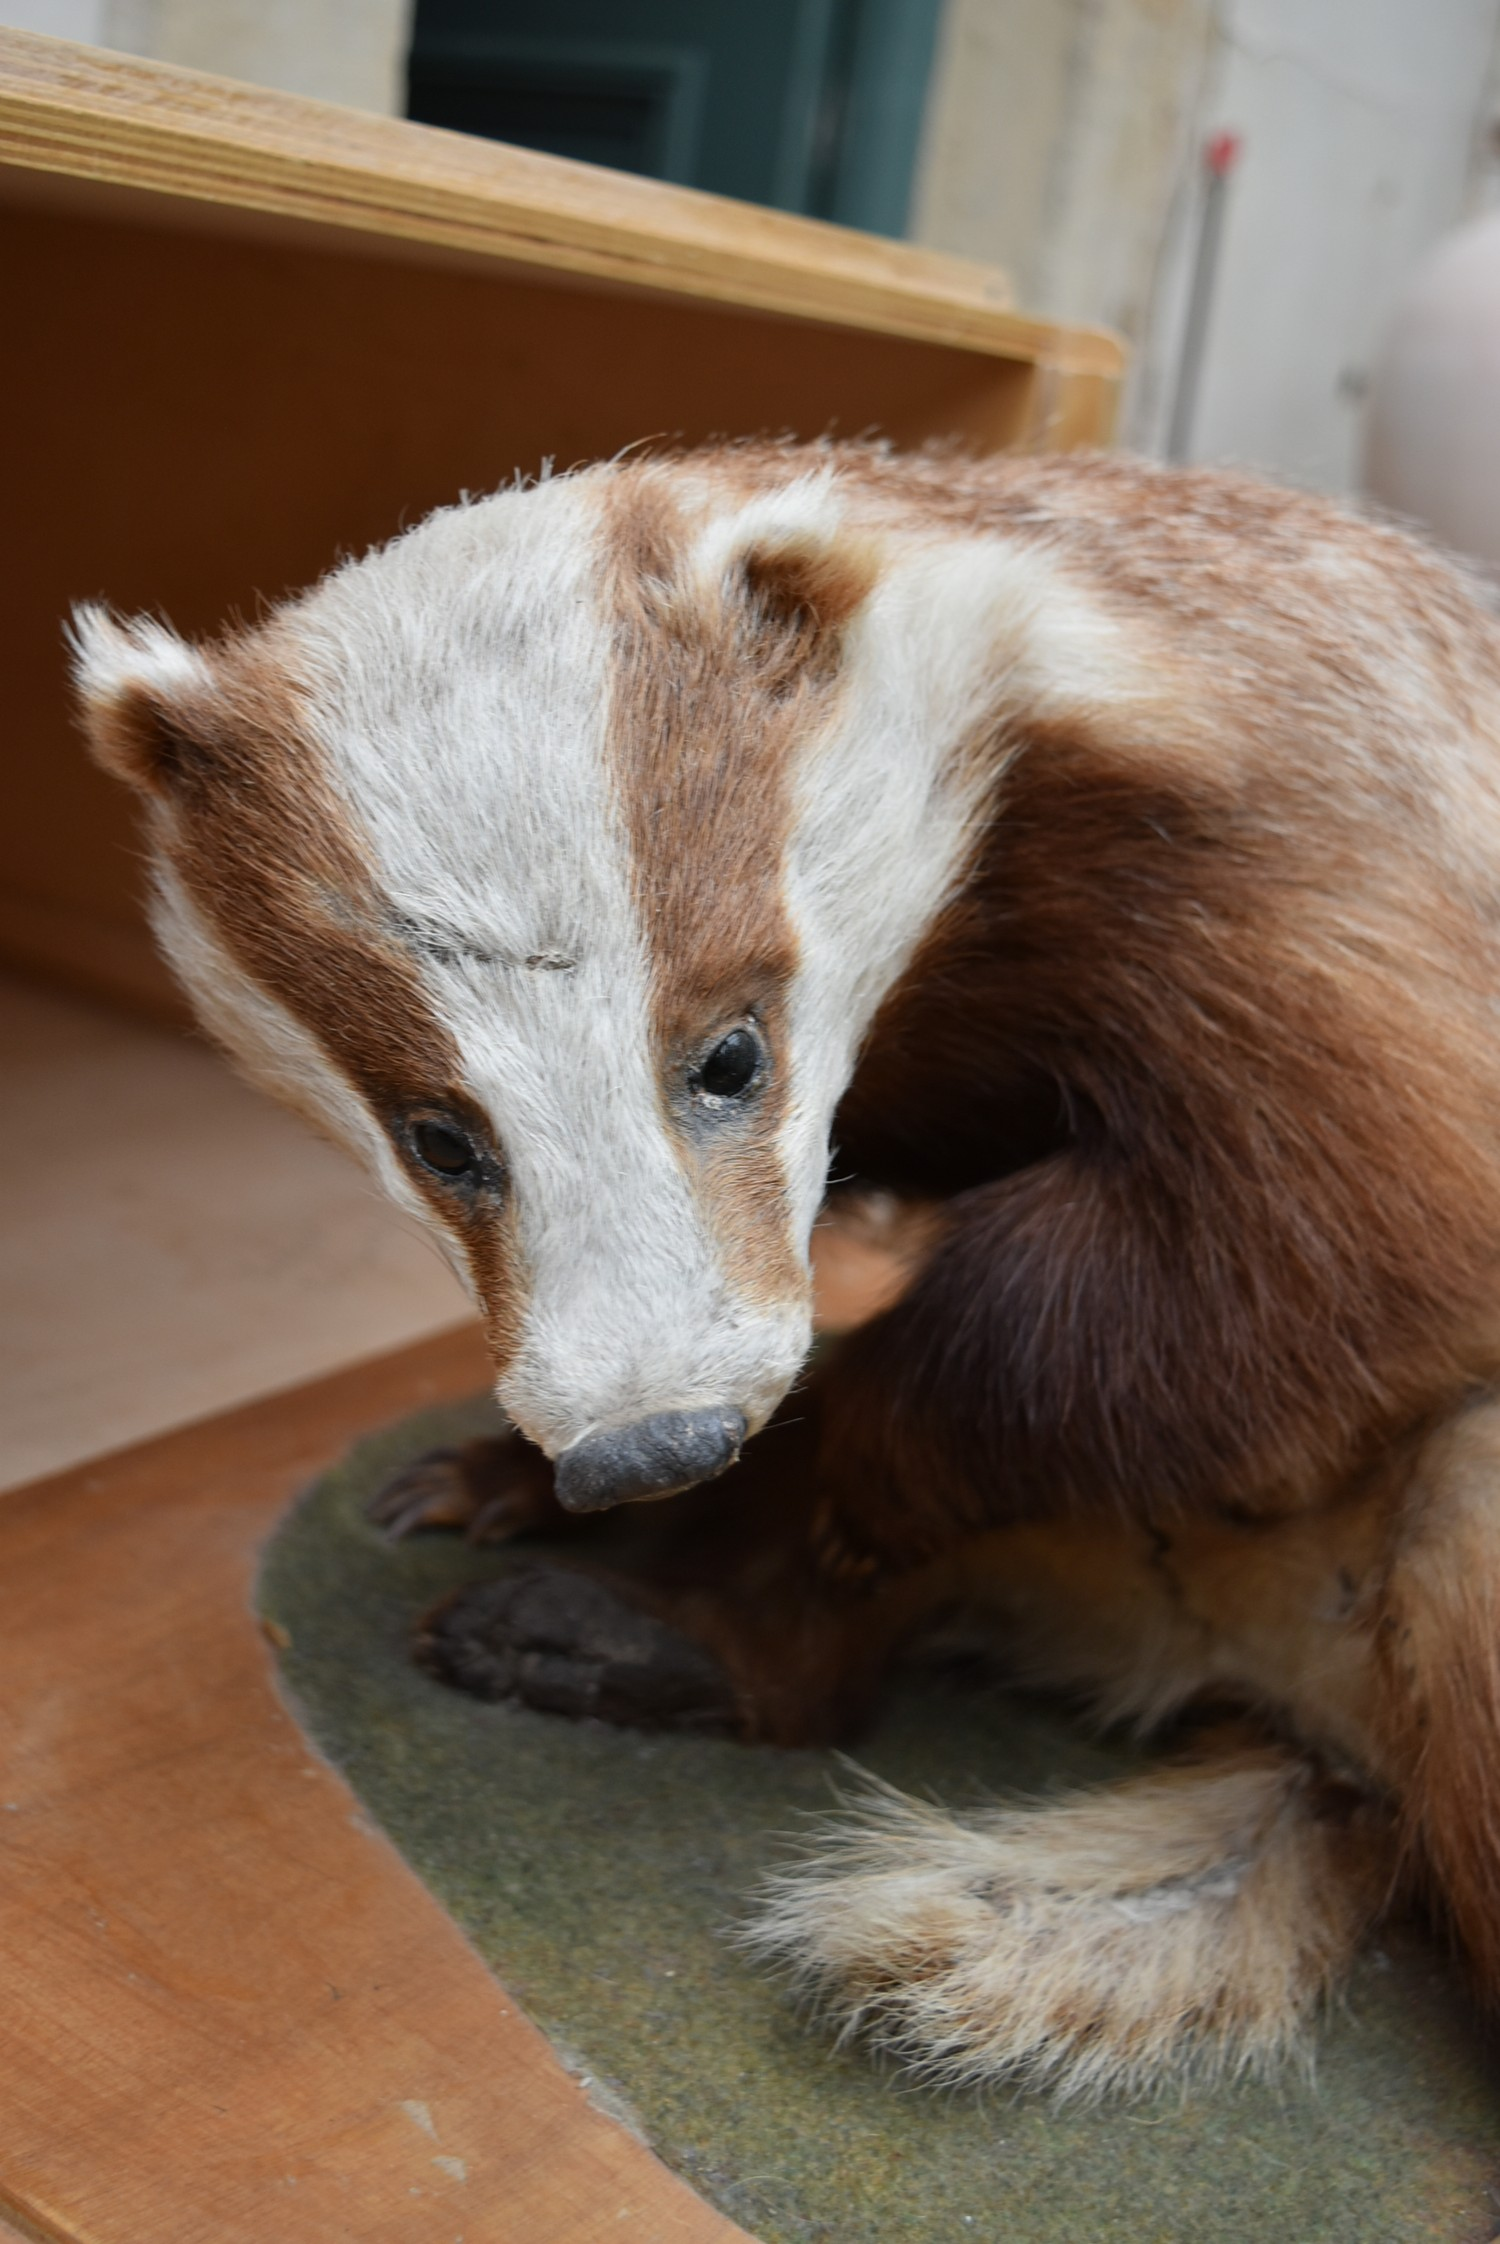 A taxidermy stuffed badger in seated pose on slide out base in bespoke fitted travelling safety - Image 4 of 8